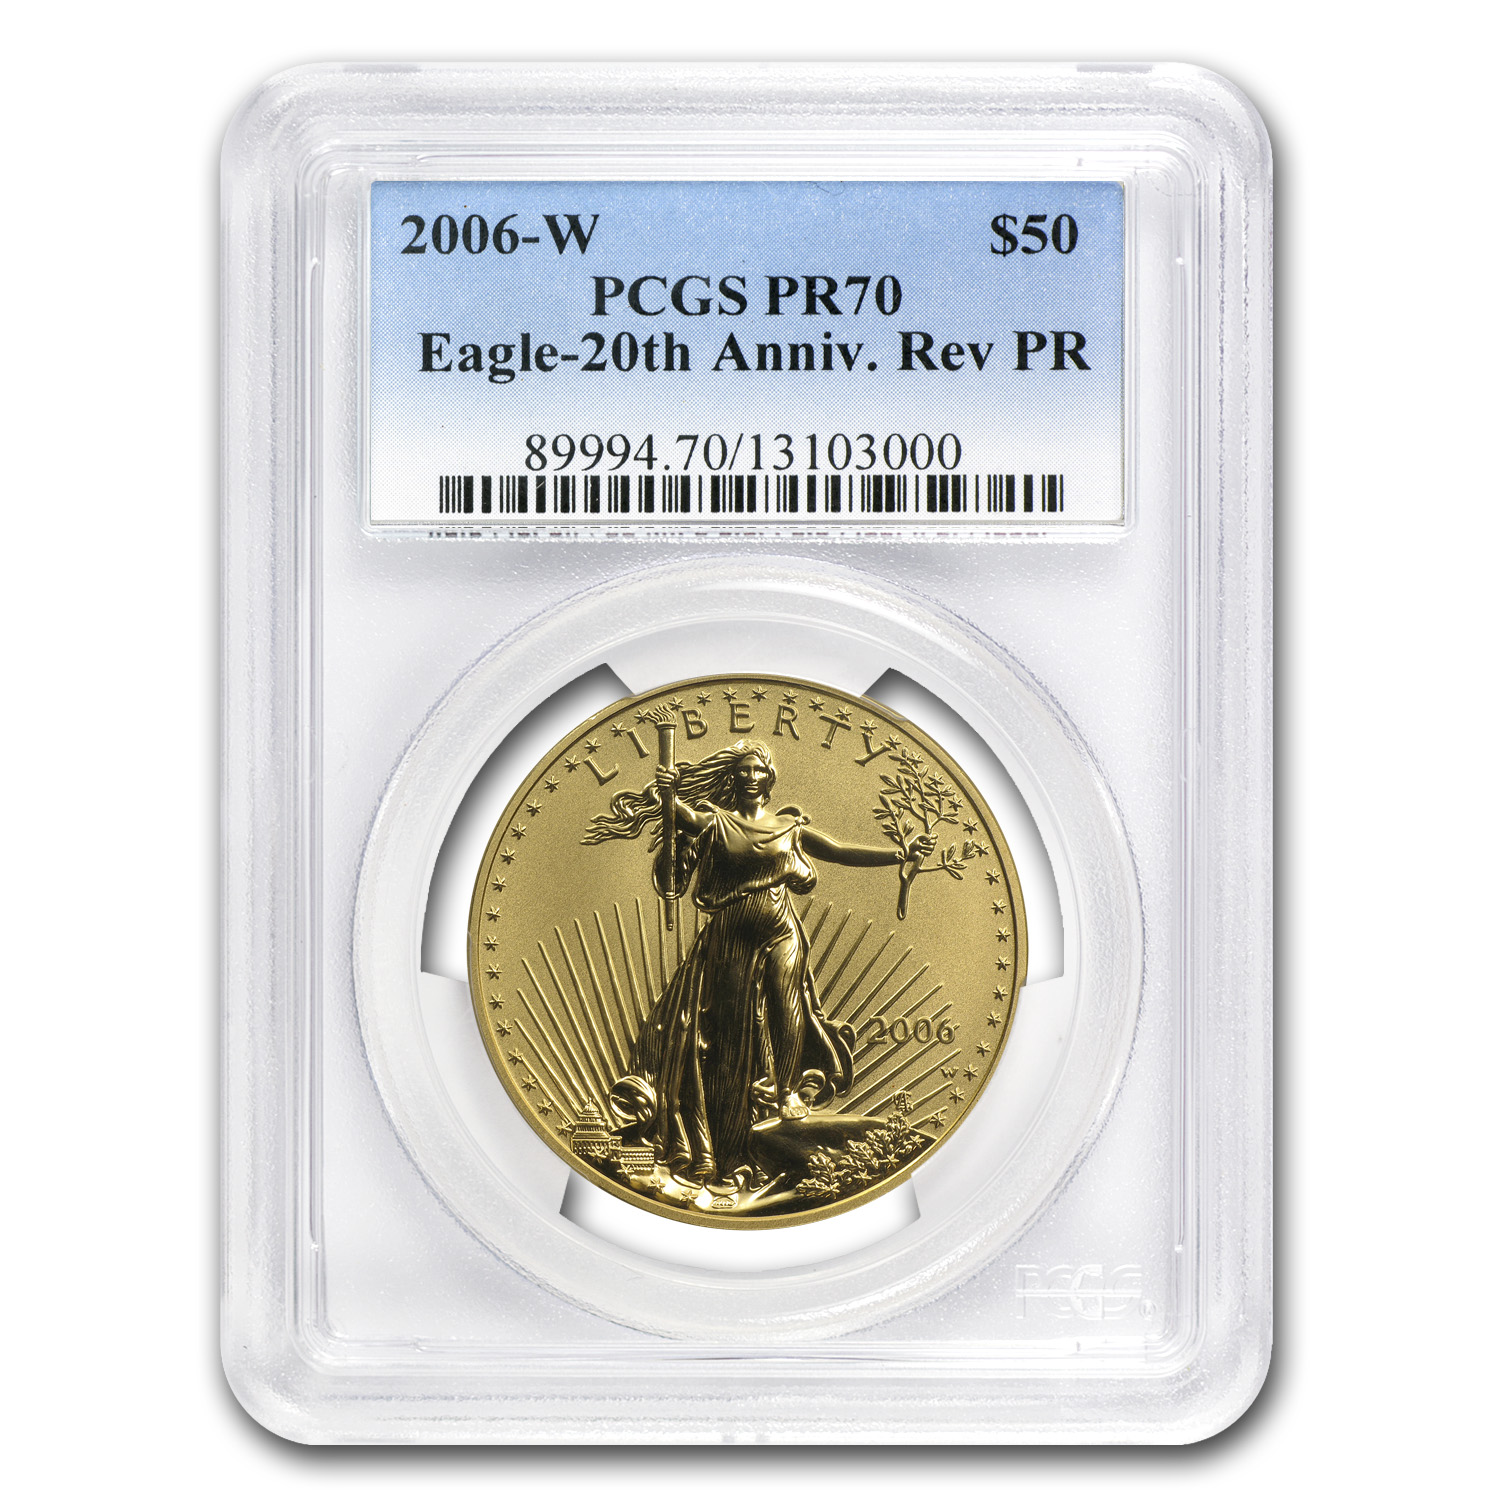 2006-W 1 oz Reverse Proof Gold American Eagle PR-70 PCGS